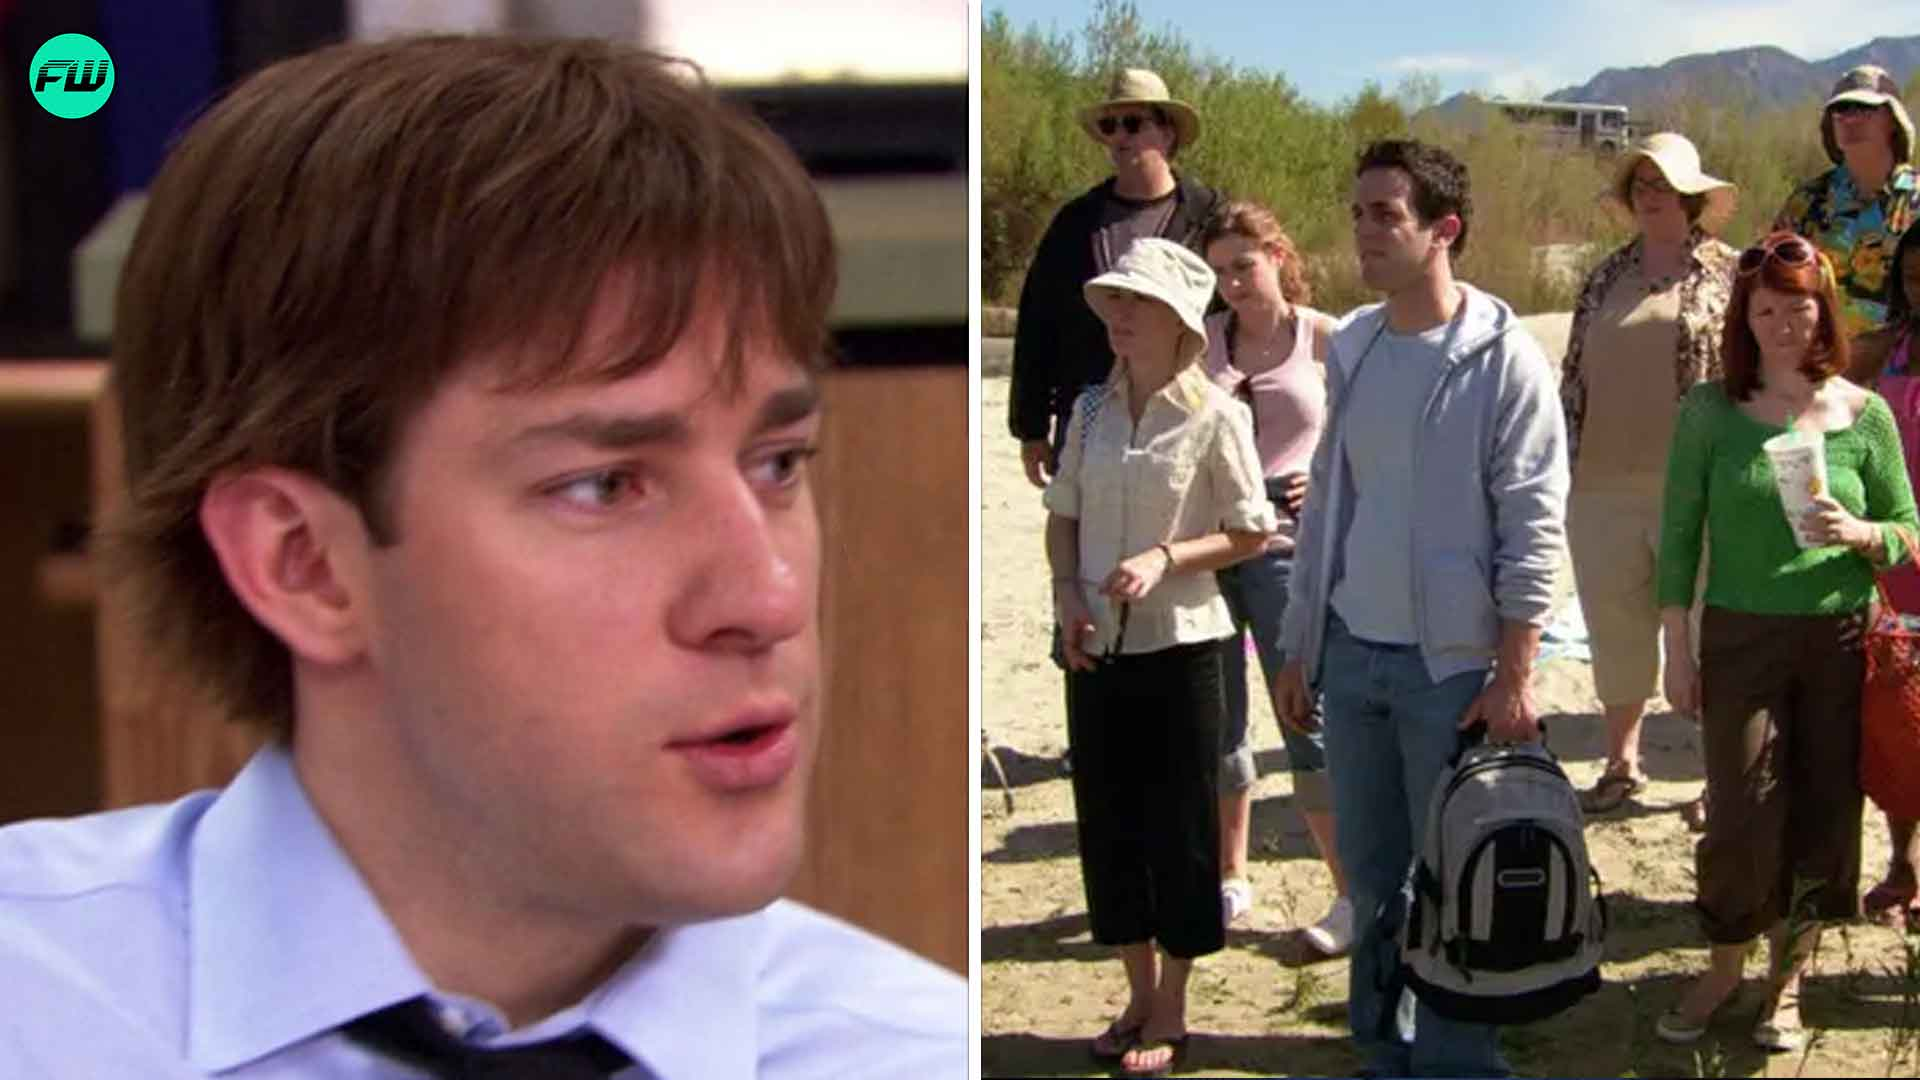 The Office: 27 Secrets Behind The Scenes You Probably Didn't Know